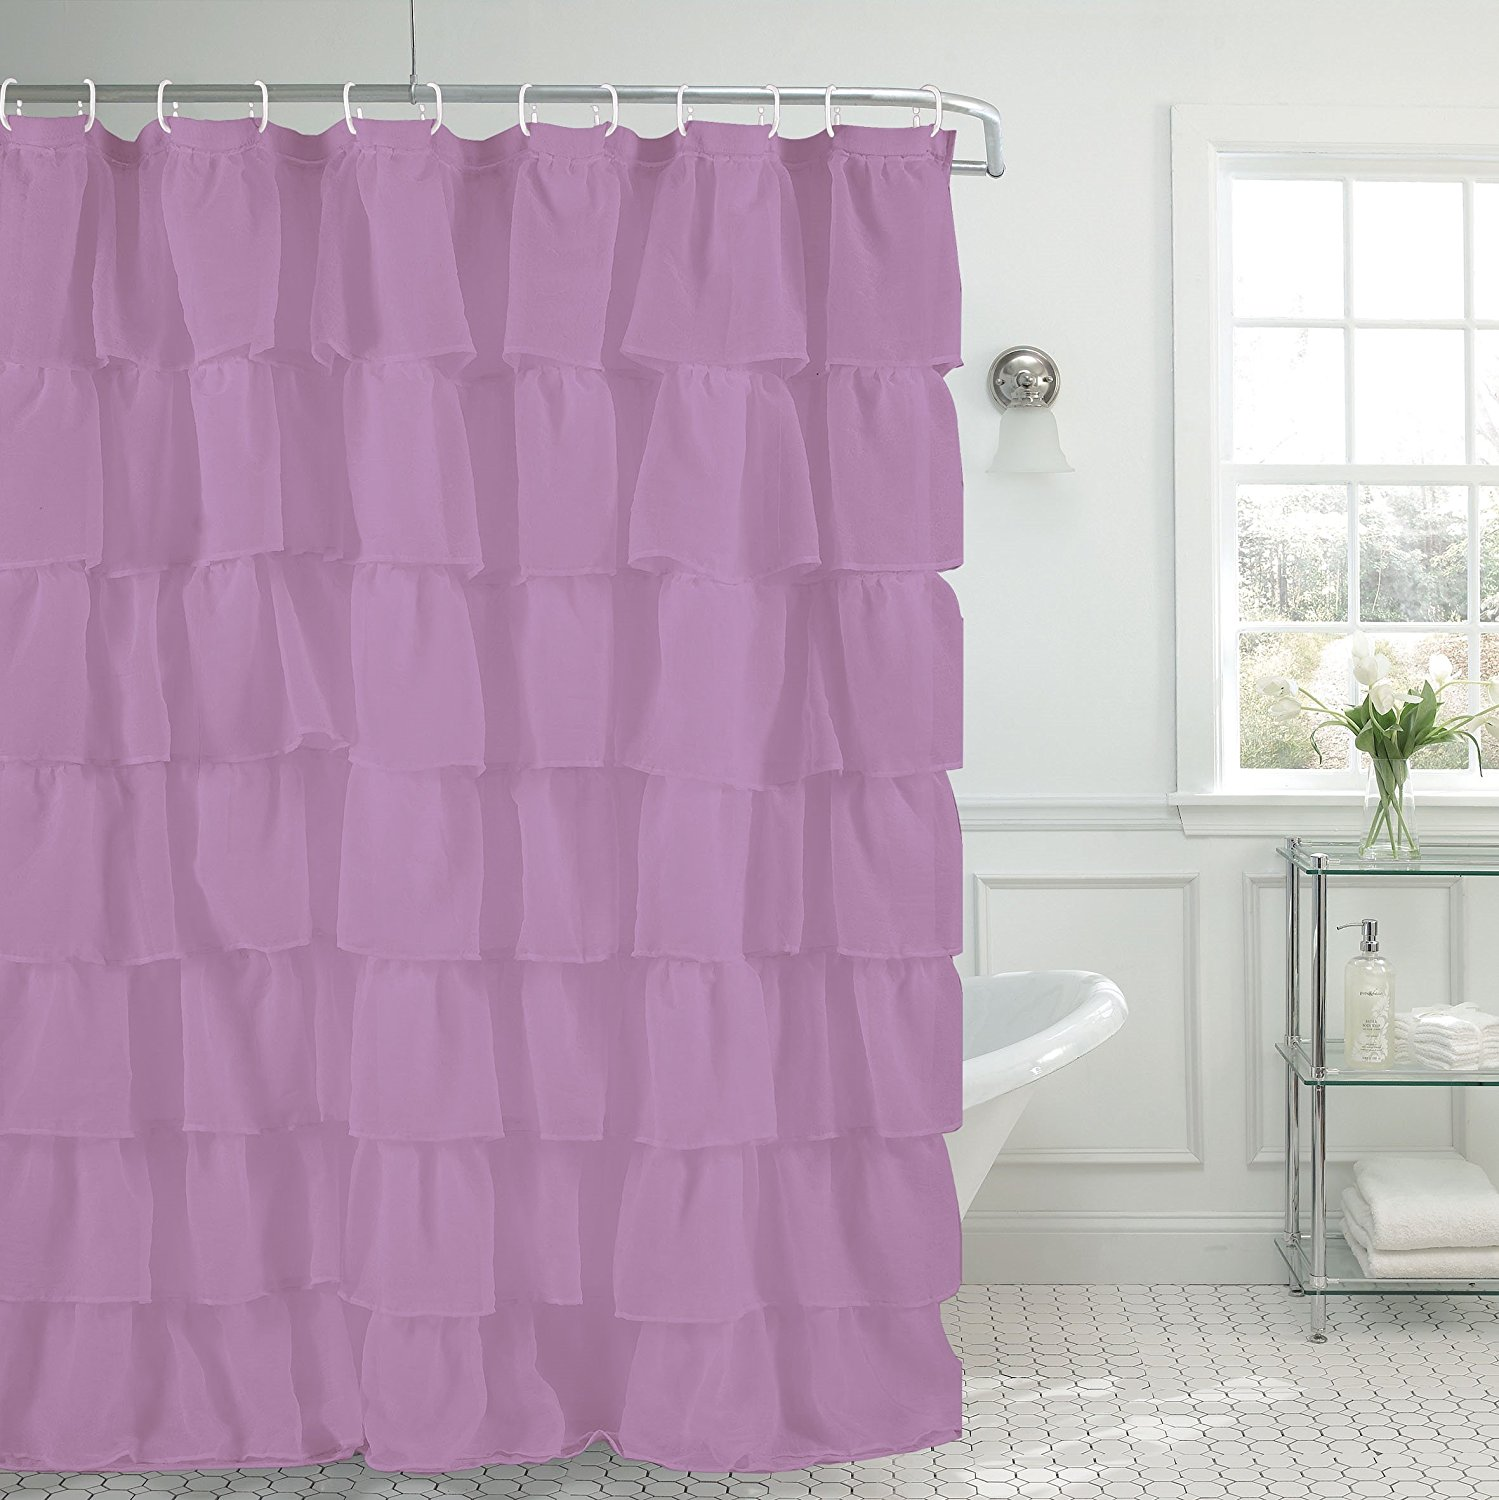 Get Quotations 1PC CHIC RUFFLED GYPSY LAYERED SHOWER CURTAIN FOR YOUR BATHROOM 70X72 IN LILAC